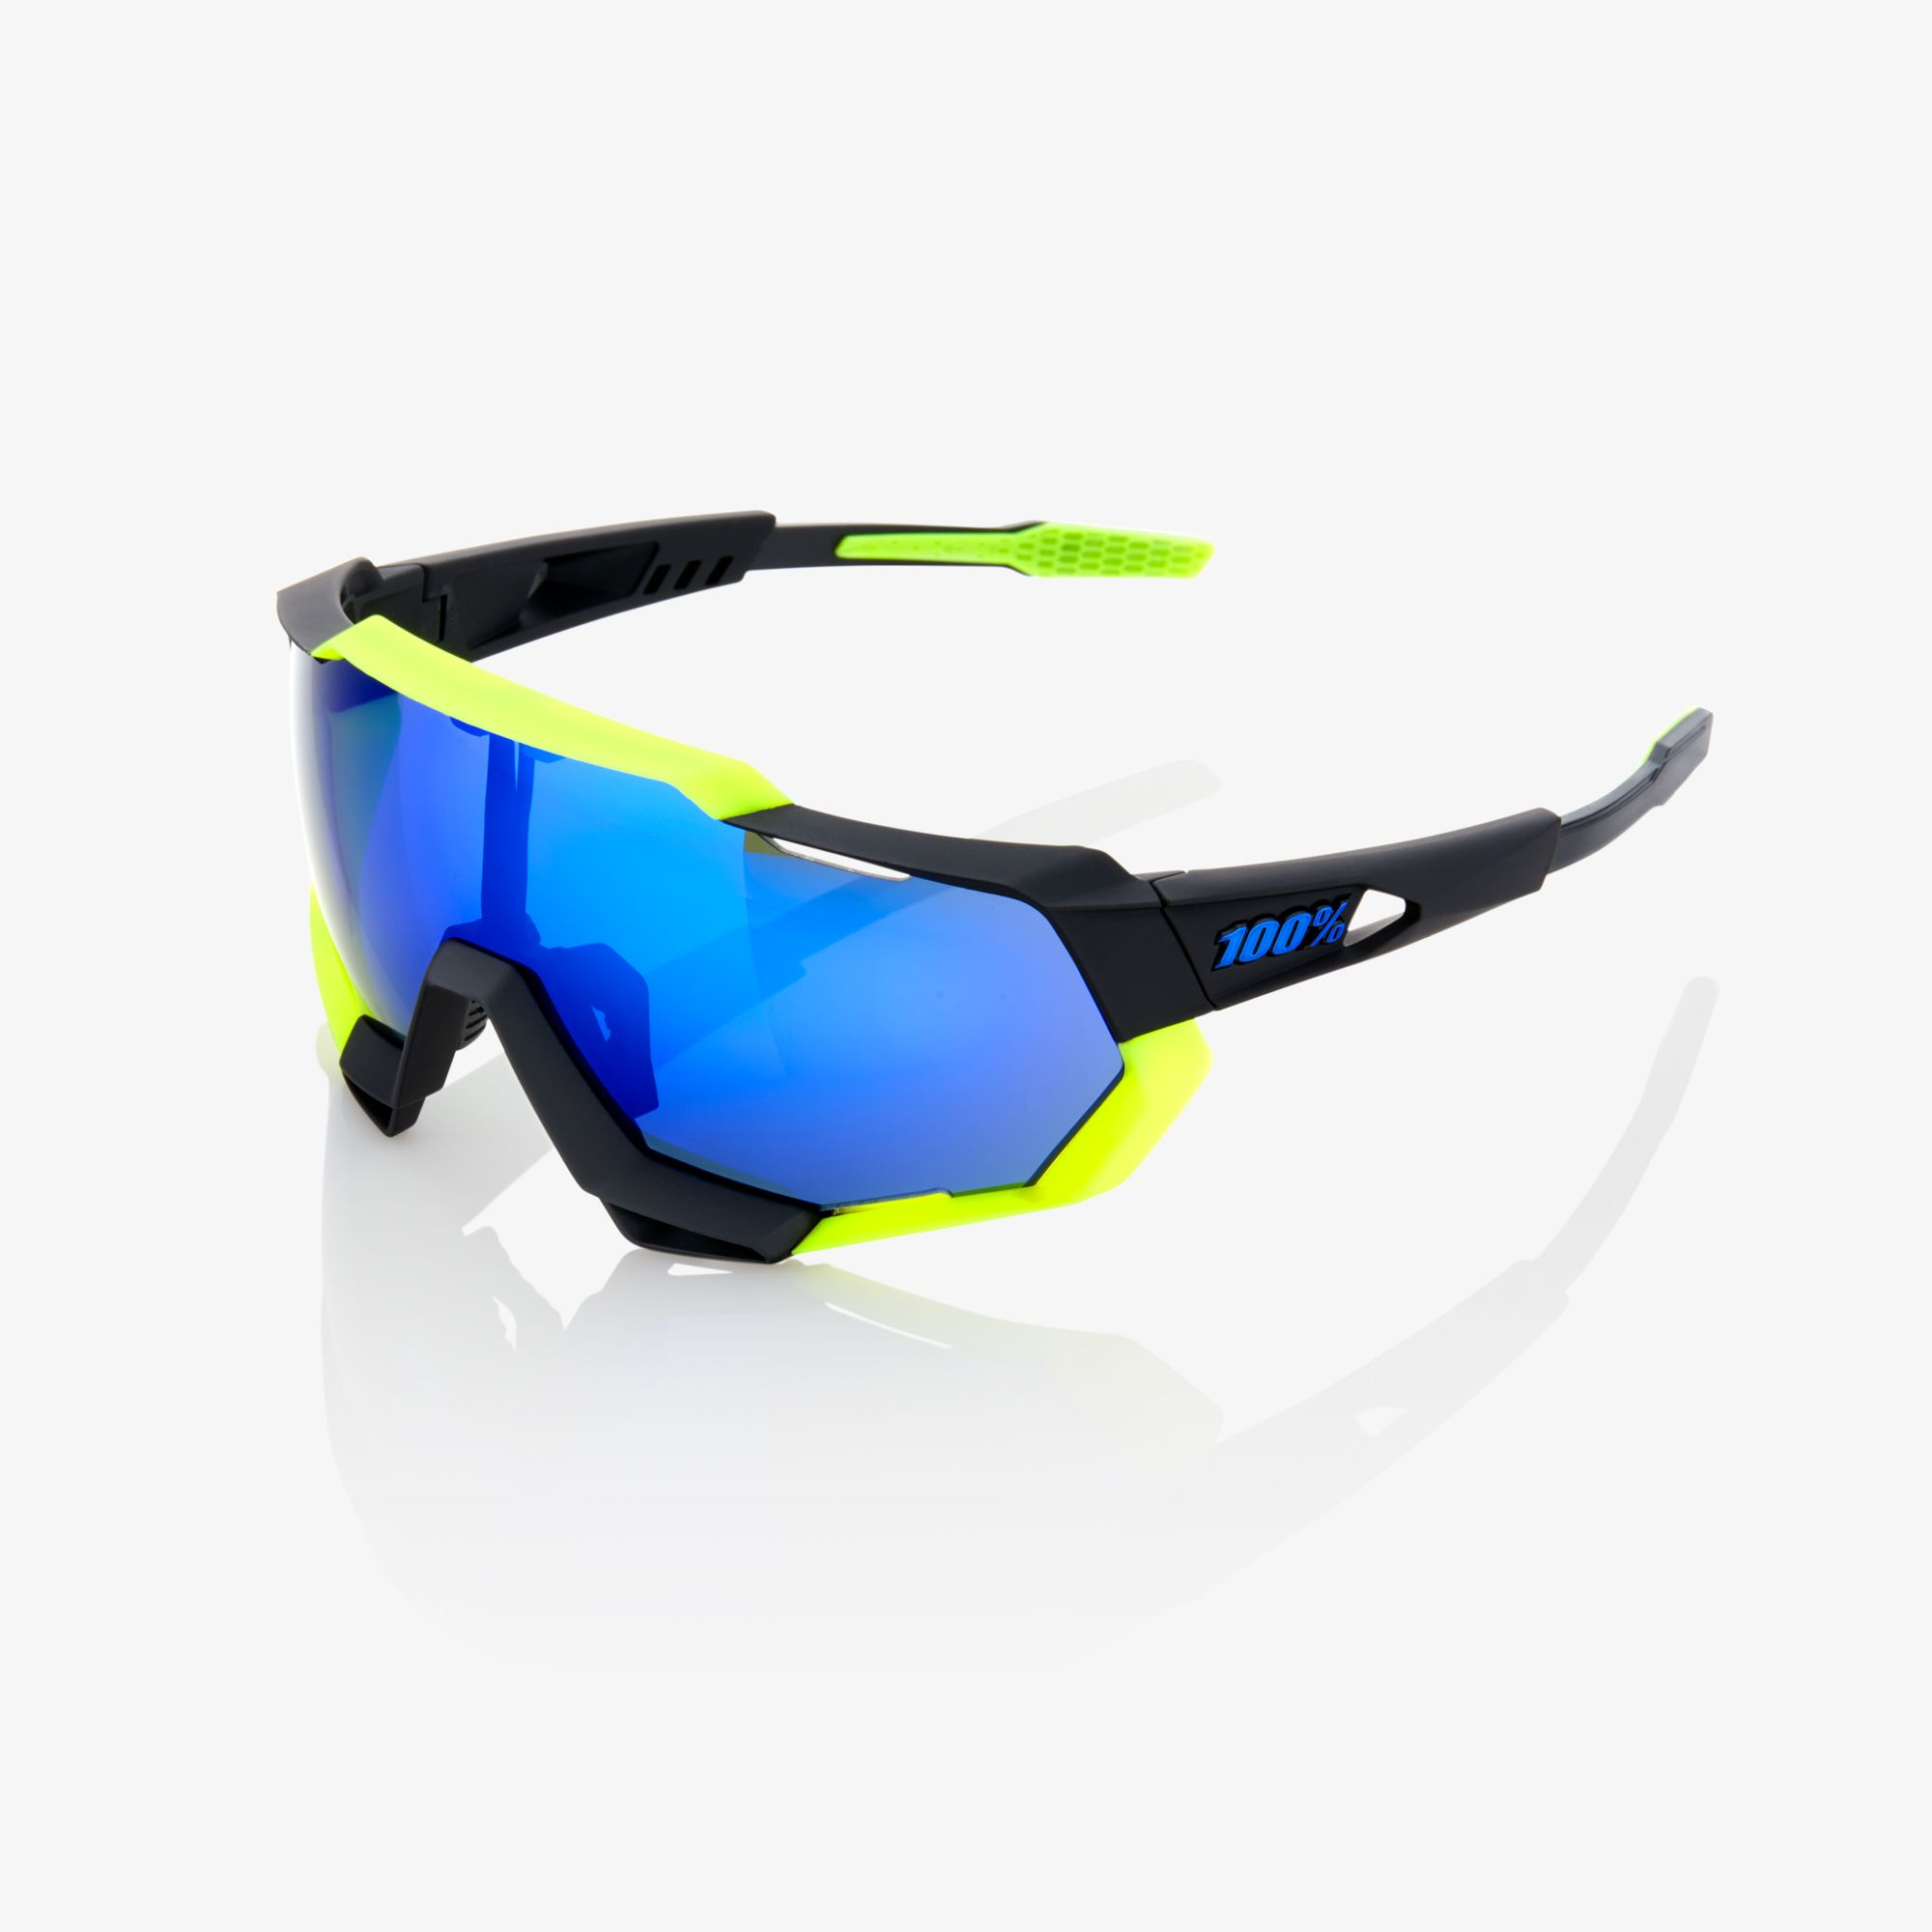 Okuliare 100% Speedtrap Polished Black Matte Neon Yellow - Electric Blue  Mirror 5cebca53e75